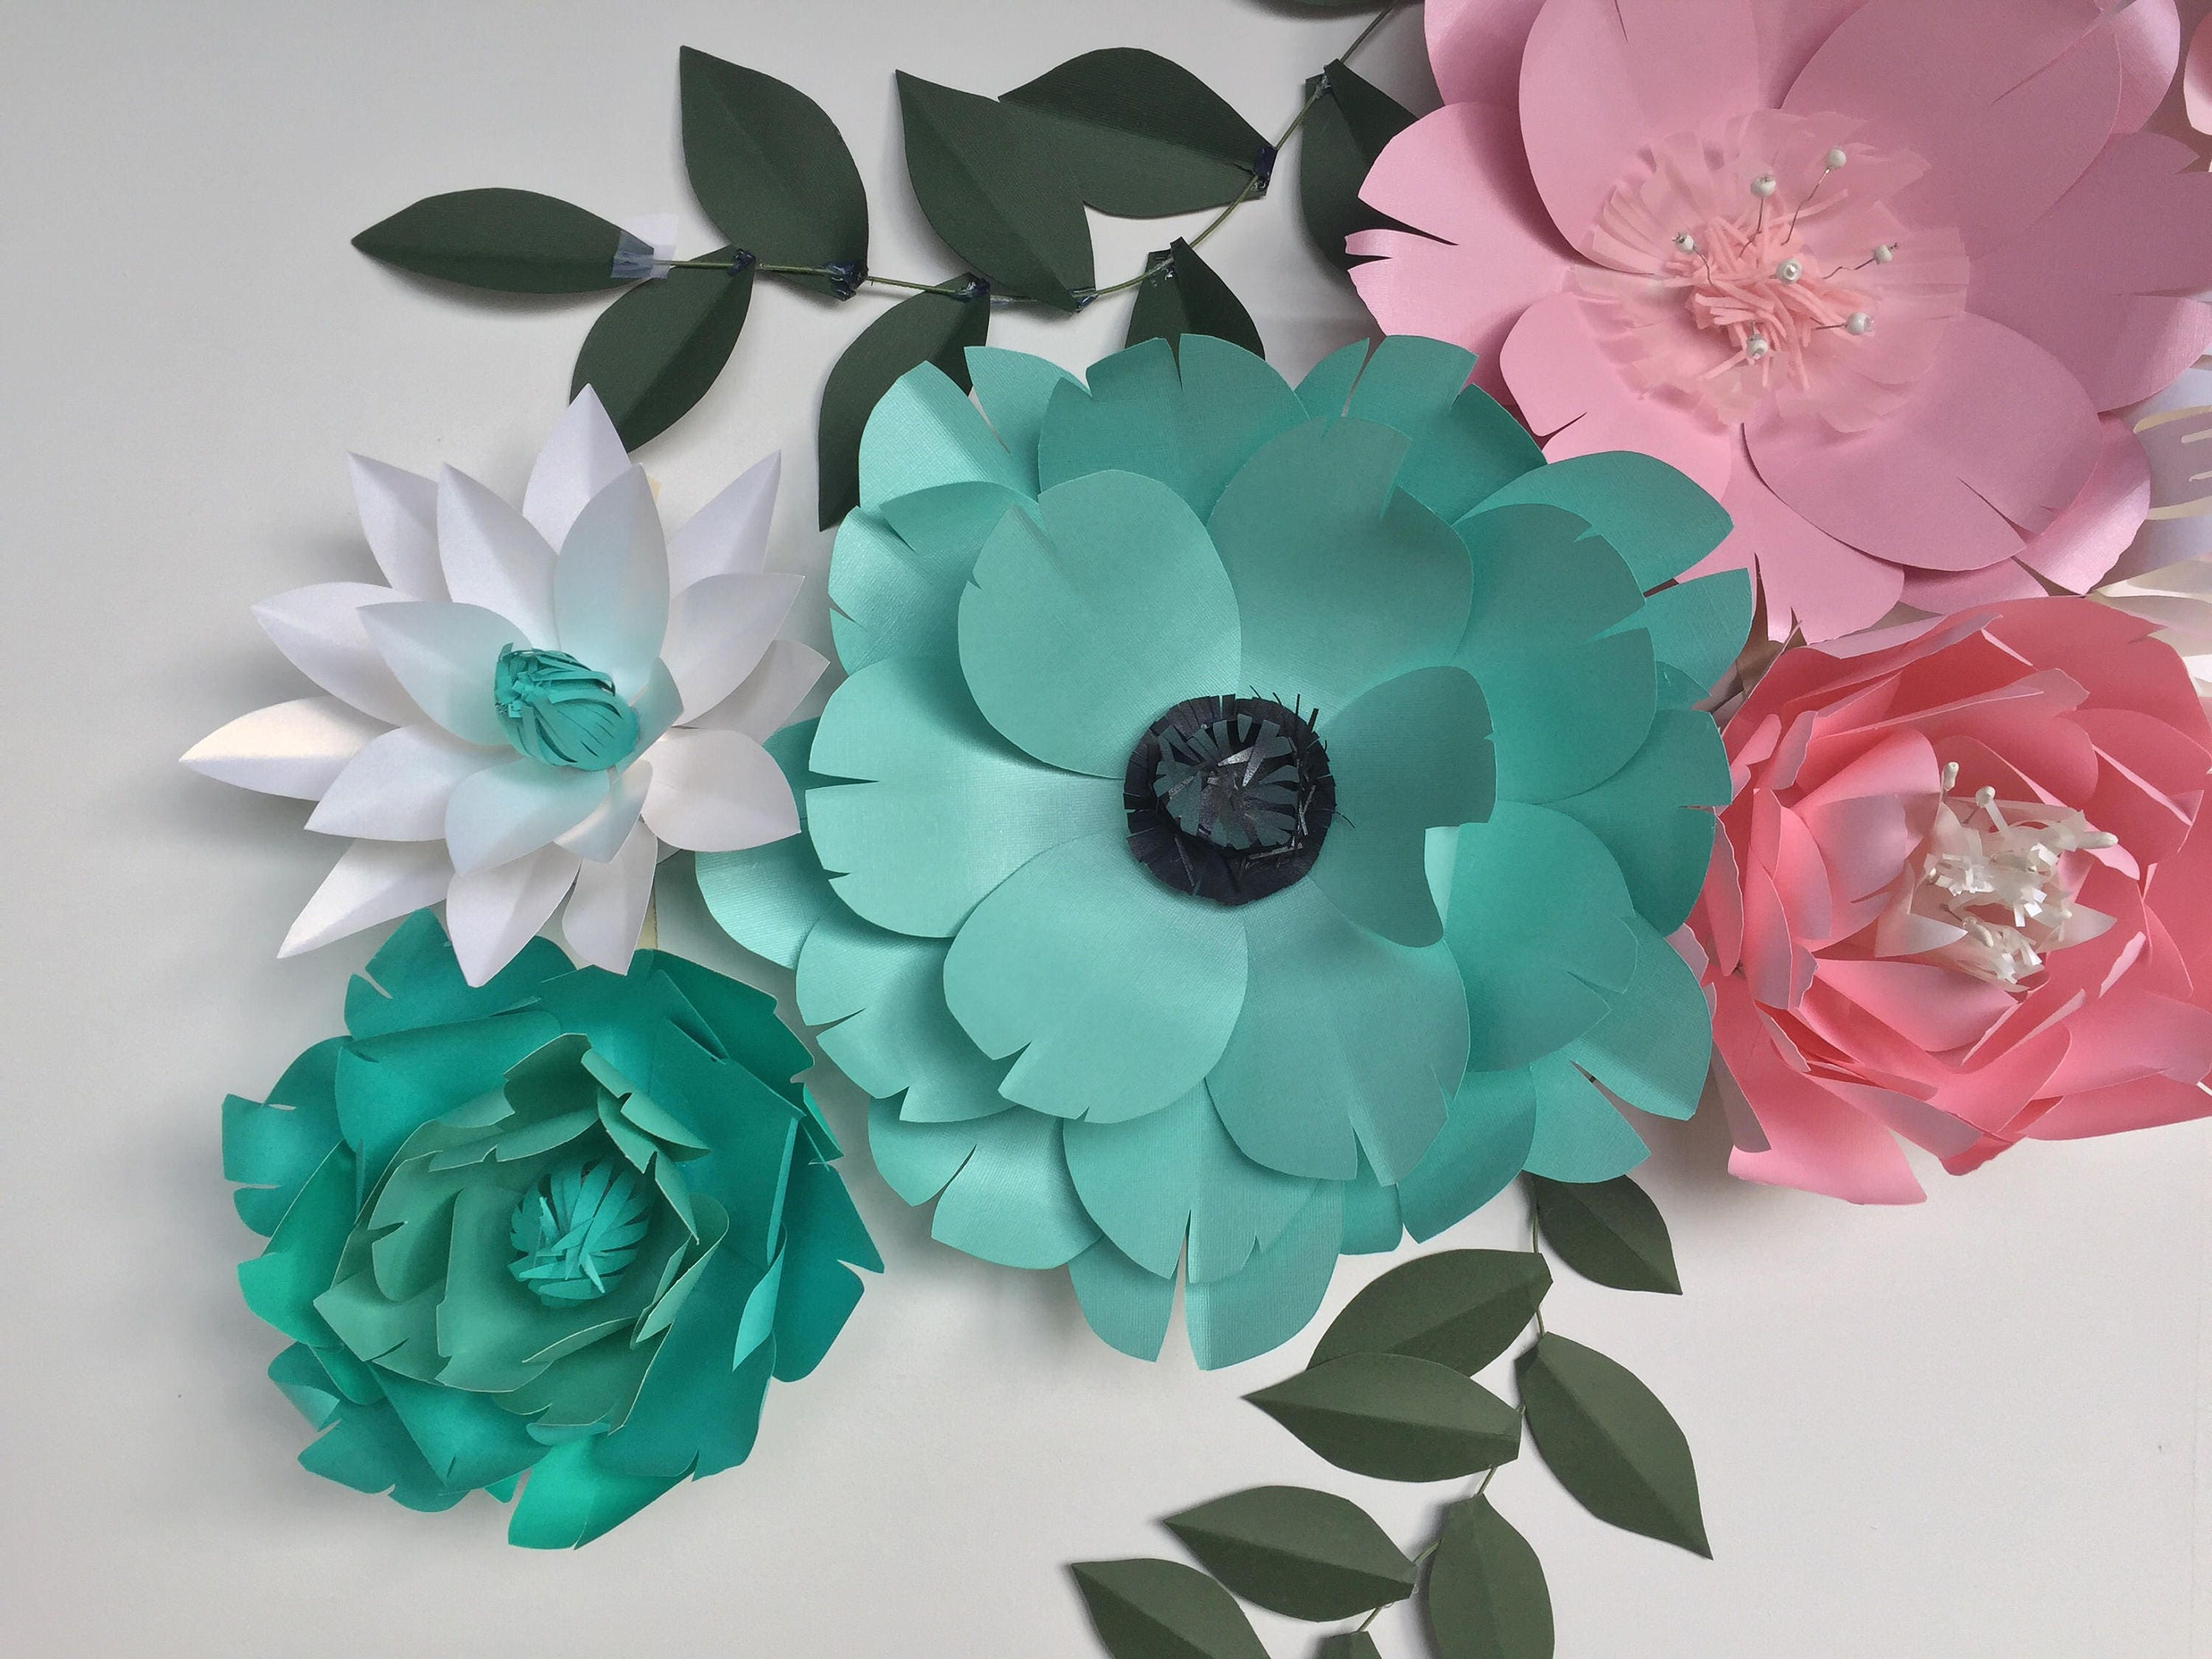 Paper flowers wall decor baby girl nursery room paper flowers paper flowers wall decor baby girl nursery room paper flowers large teal wall paper flowers pink paper flowers wedding party backdrop amipublicfo Images